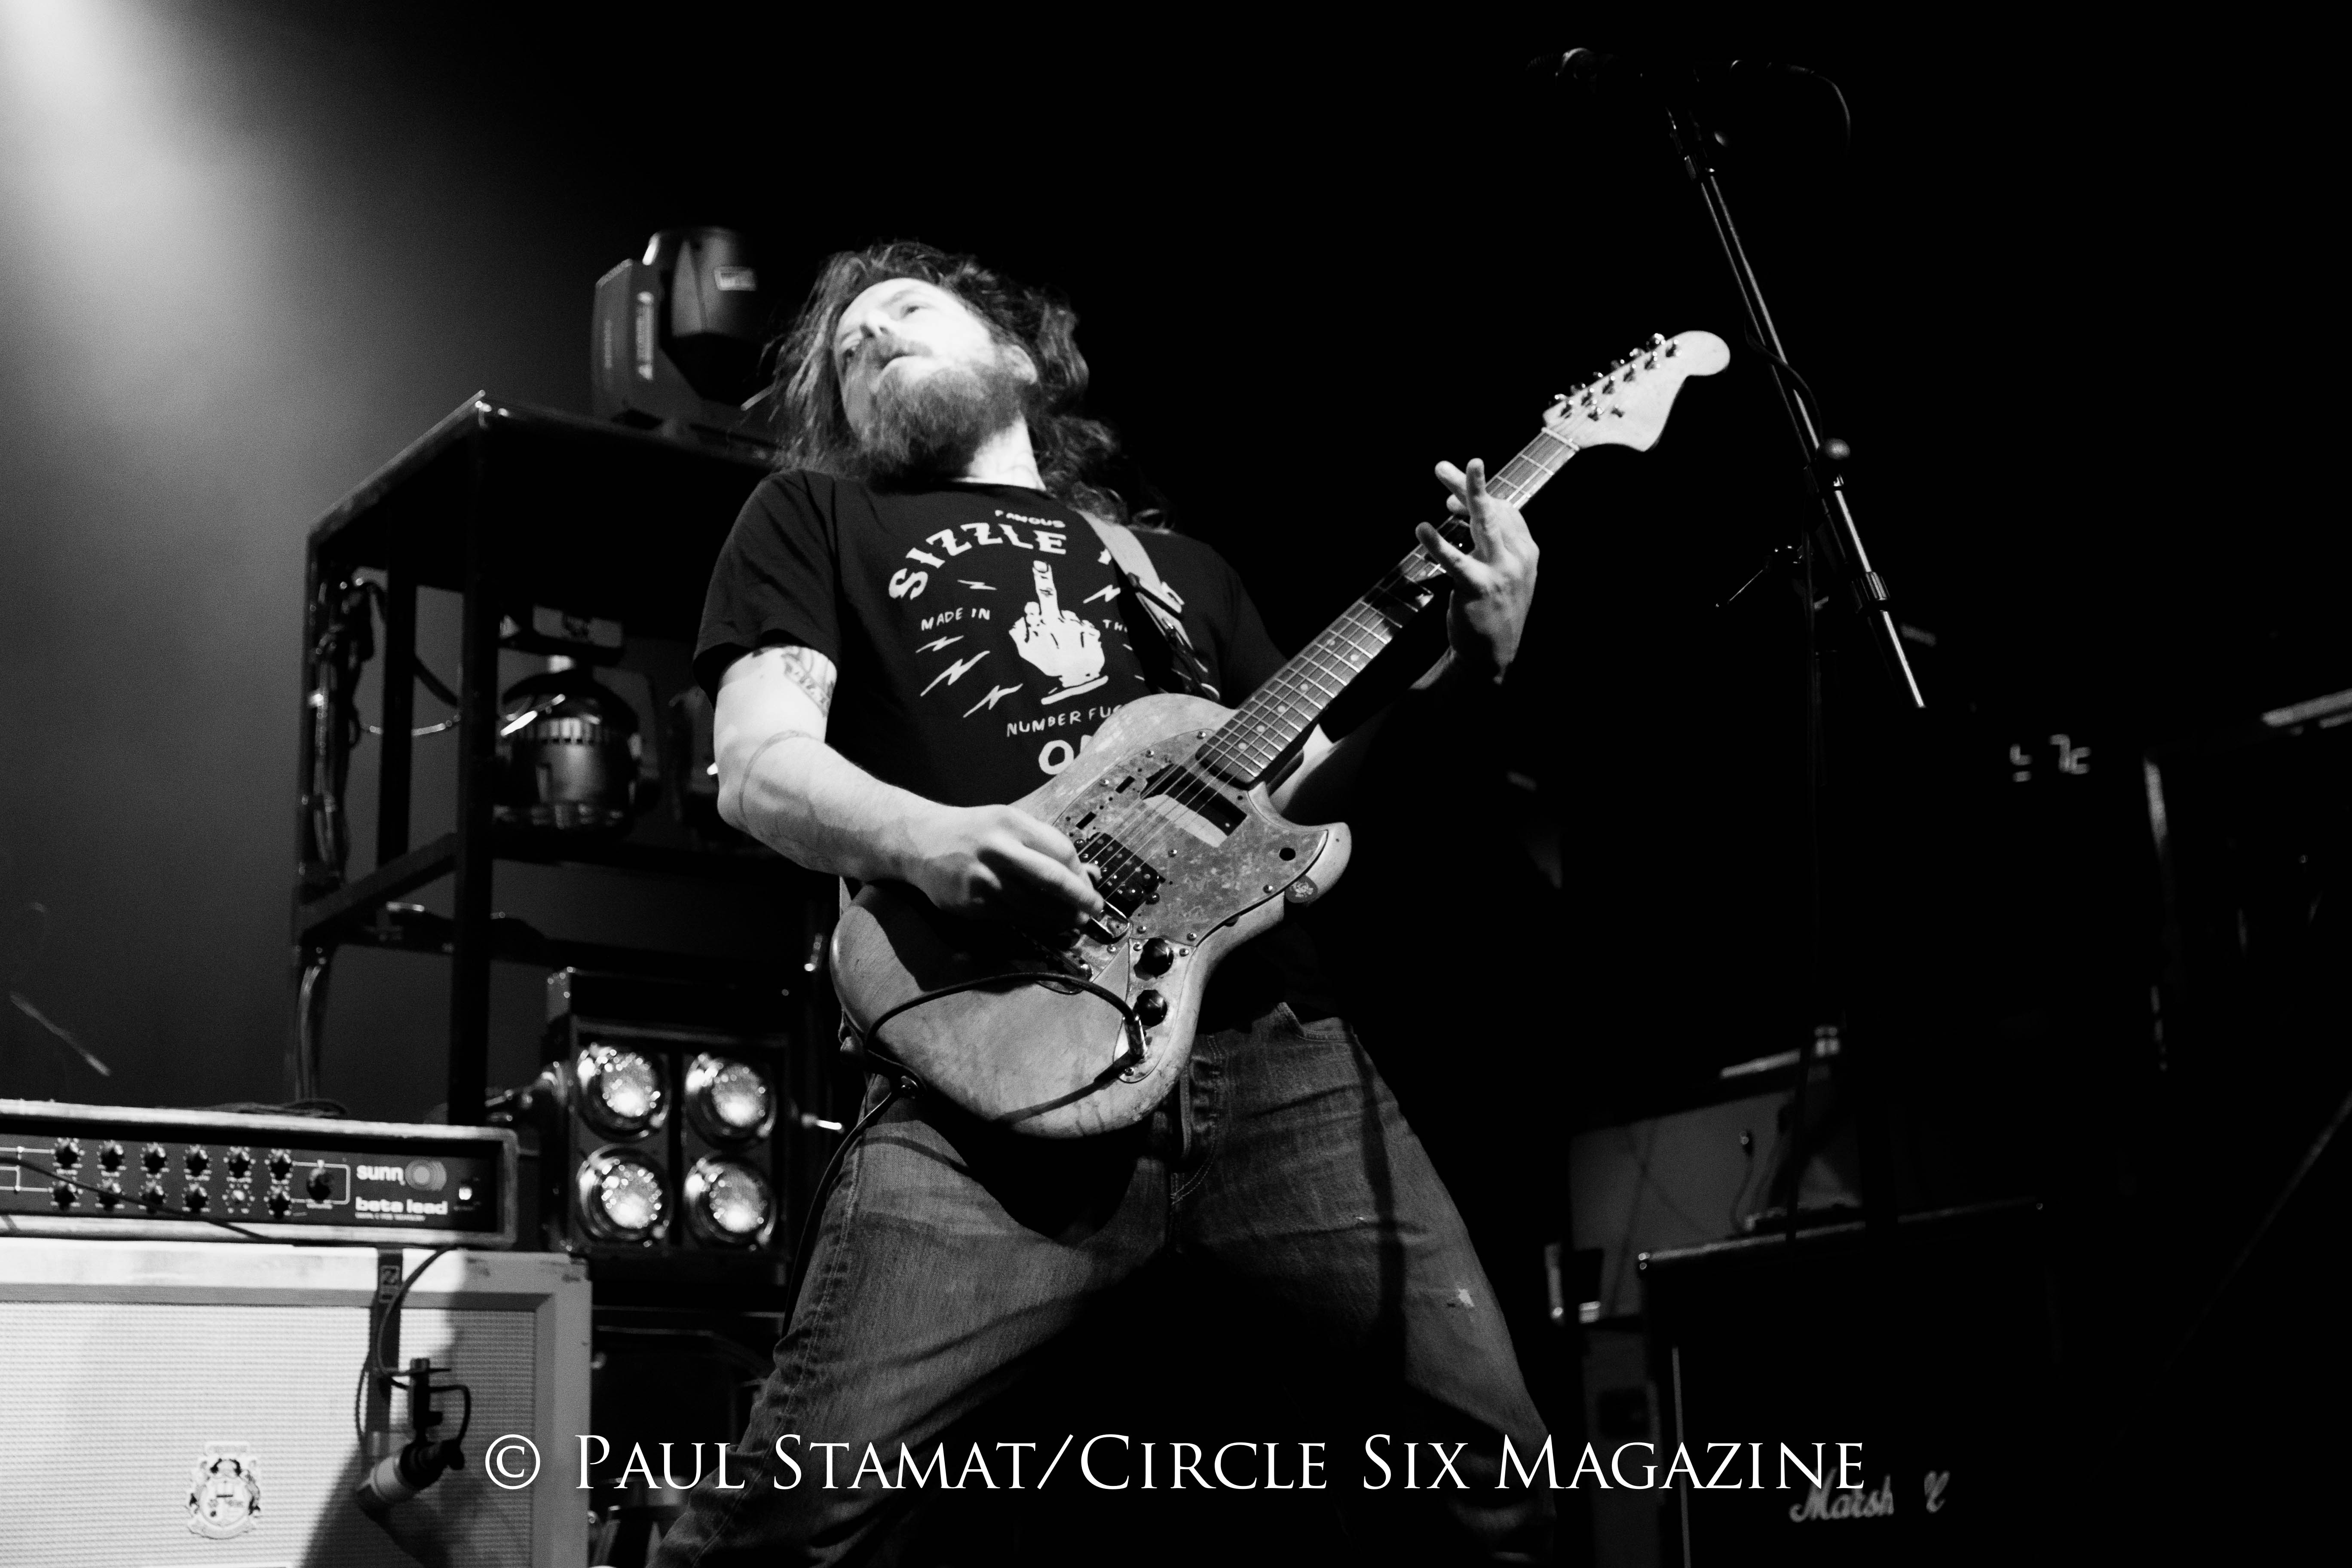 Opeth In Flames Show 2 (7 of 39)